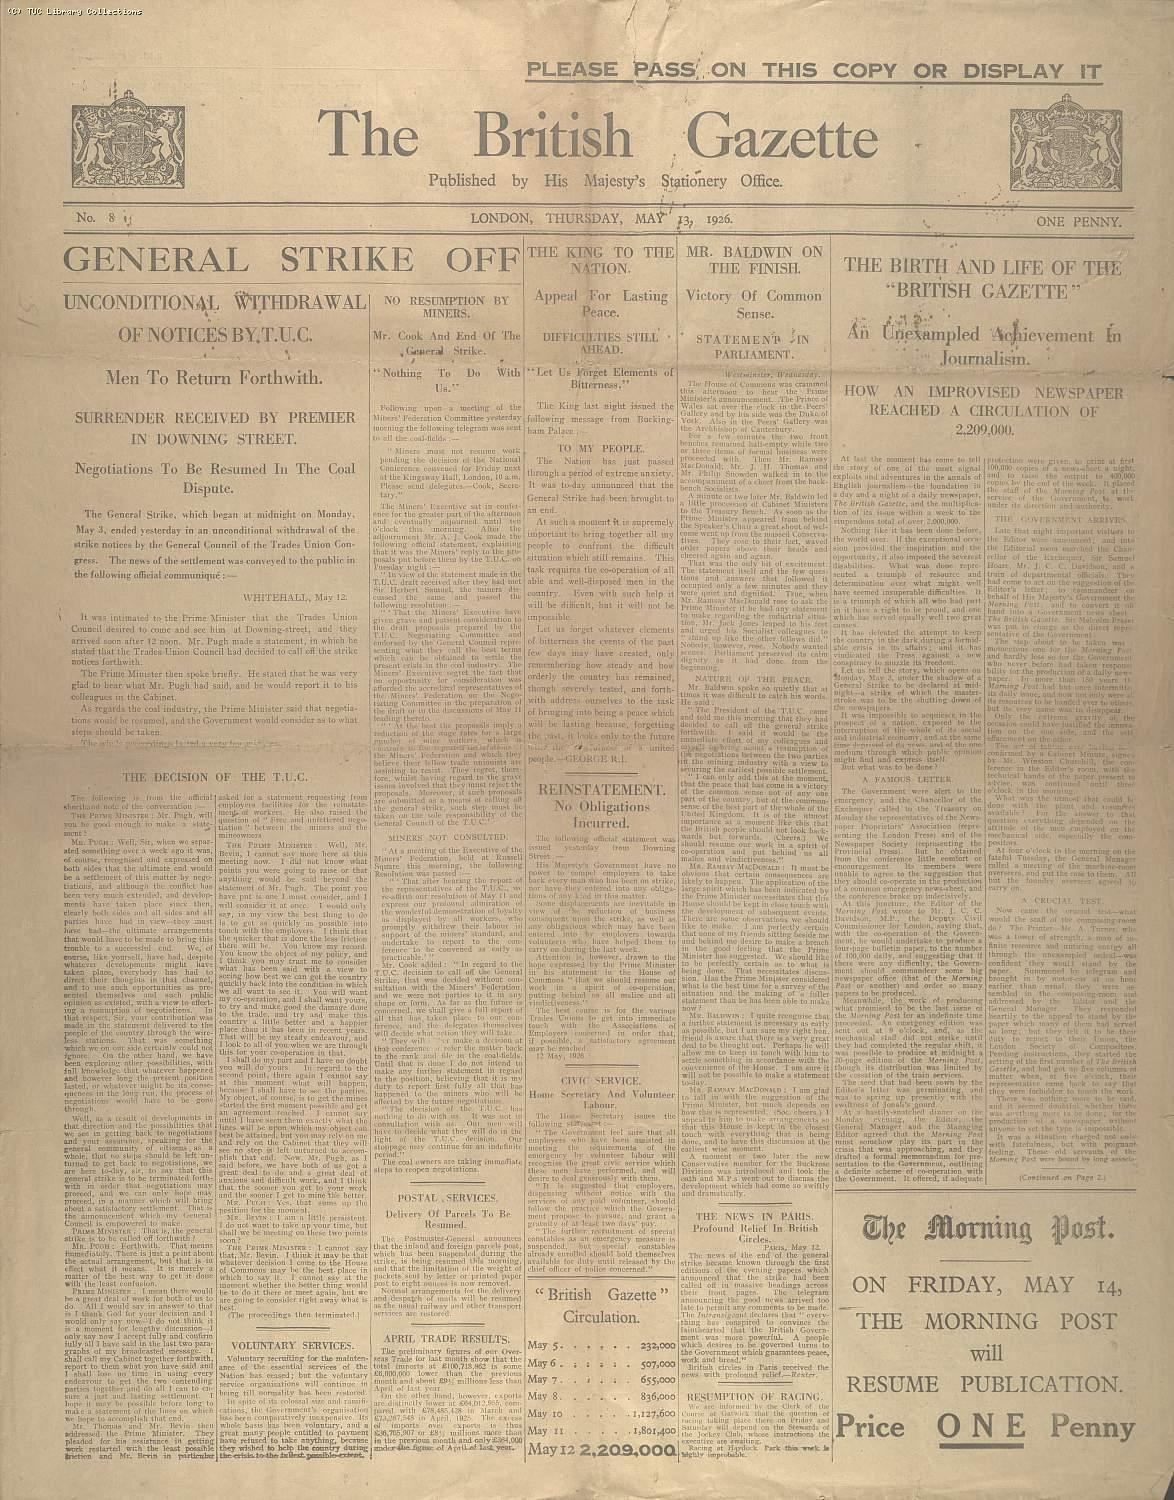 The British Gazette, 13 May 1926